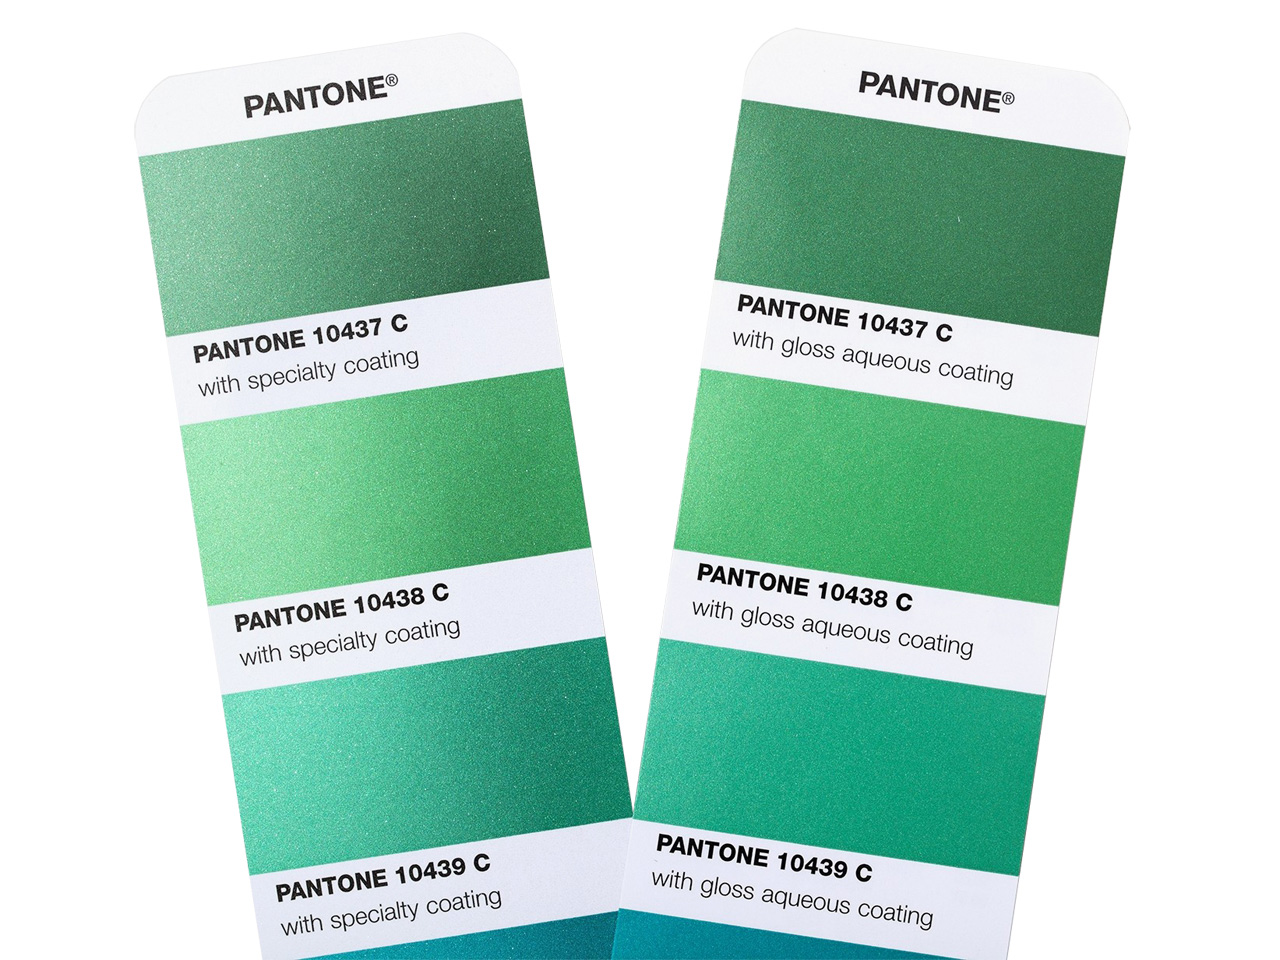 Pantone Grün Pantone® Metallics Guide Solid Coated | Artwareshop